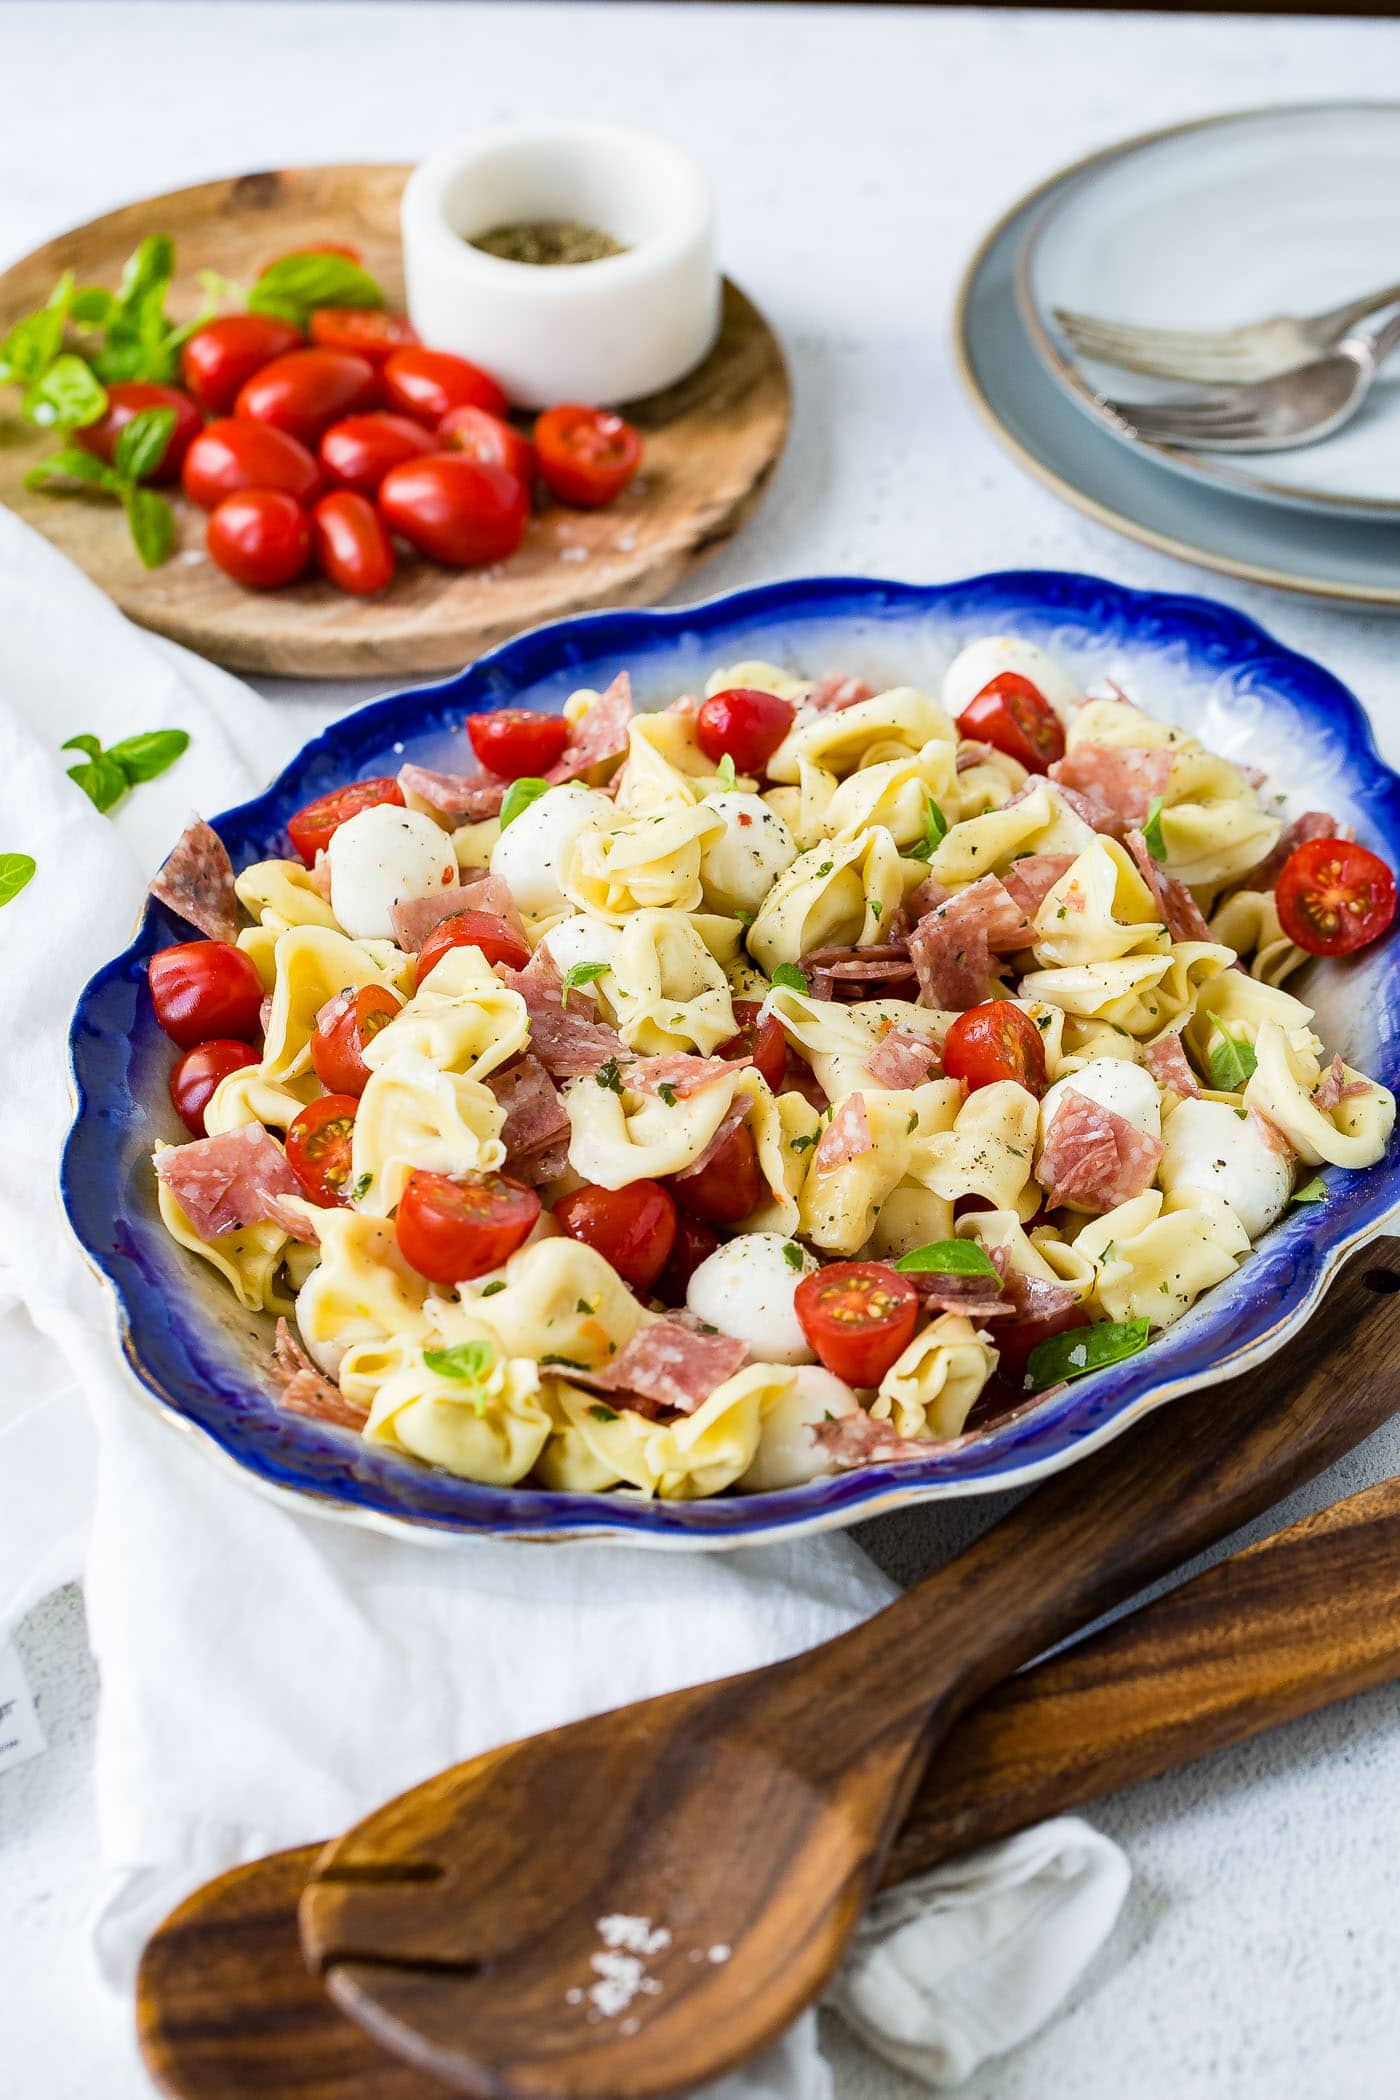 A blue edged serving dish of 5 minuted Italian salami tortellini salad. There are chunks of salami and slices of tomato in the tortellini. There are also mozzarella balls in the salad. A cutting board with grape tomatoes is in the background.